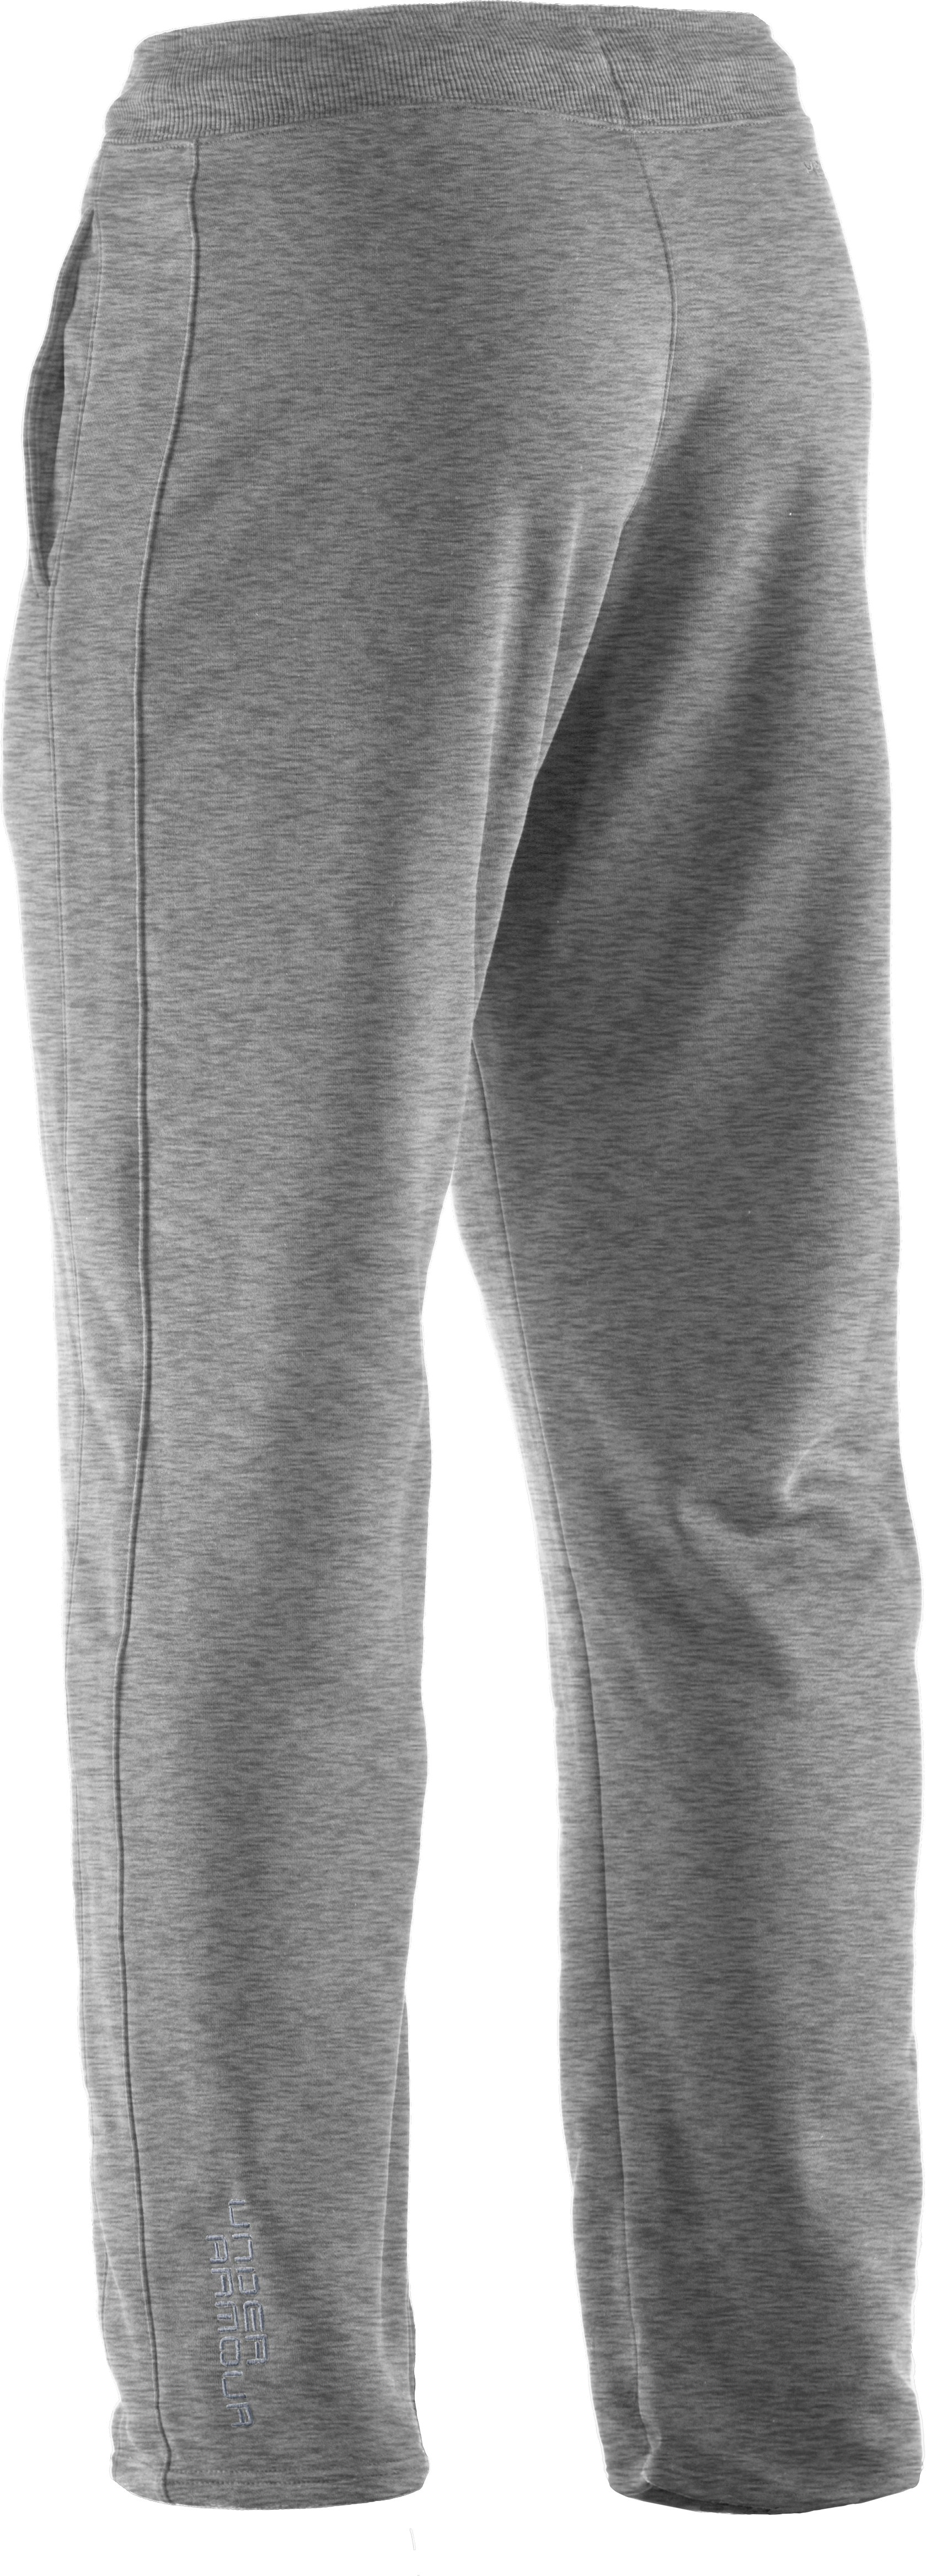 Men's Charged Cotton® Storm Pants, True Gray Heather